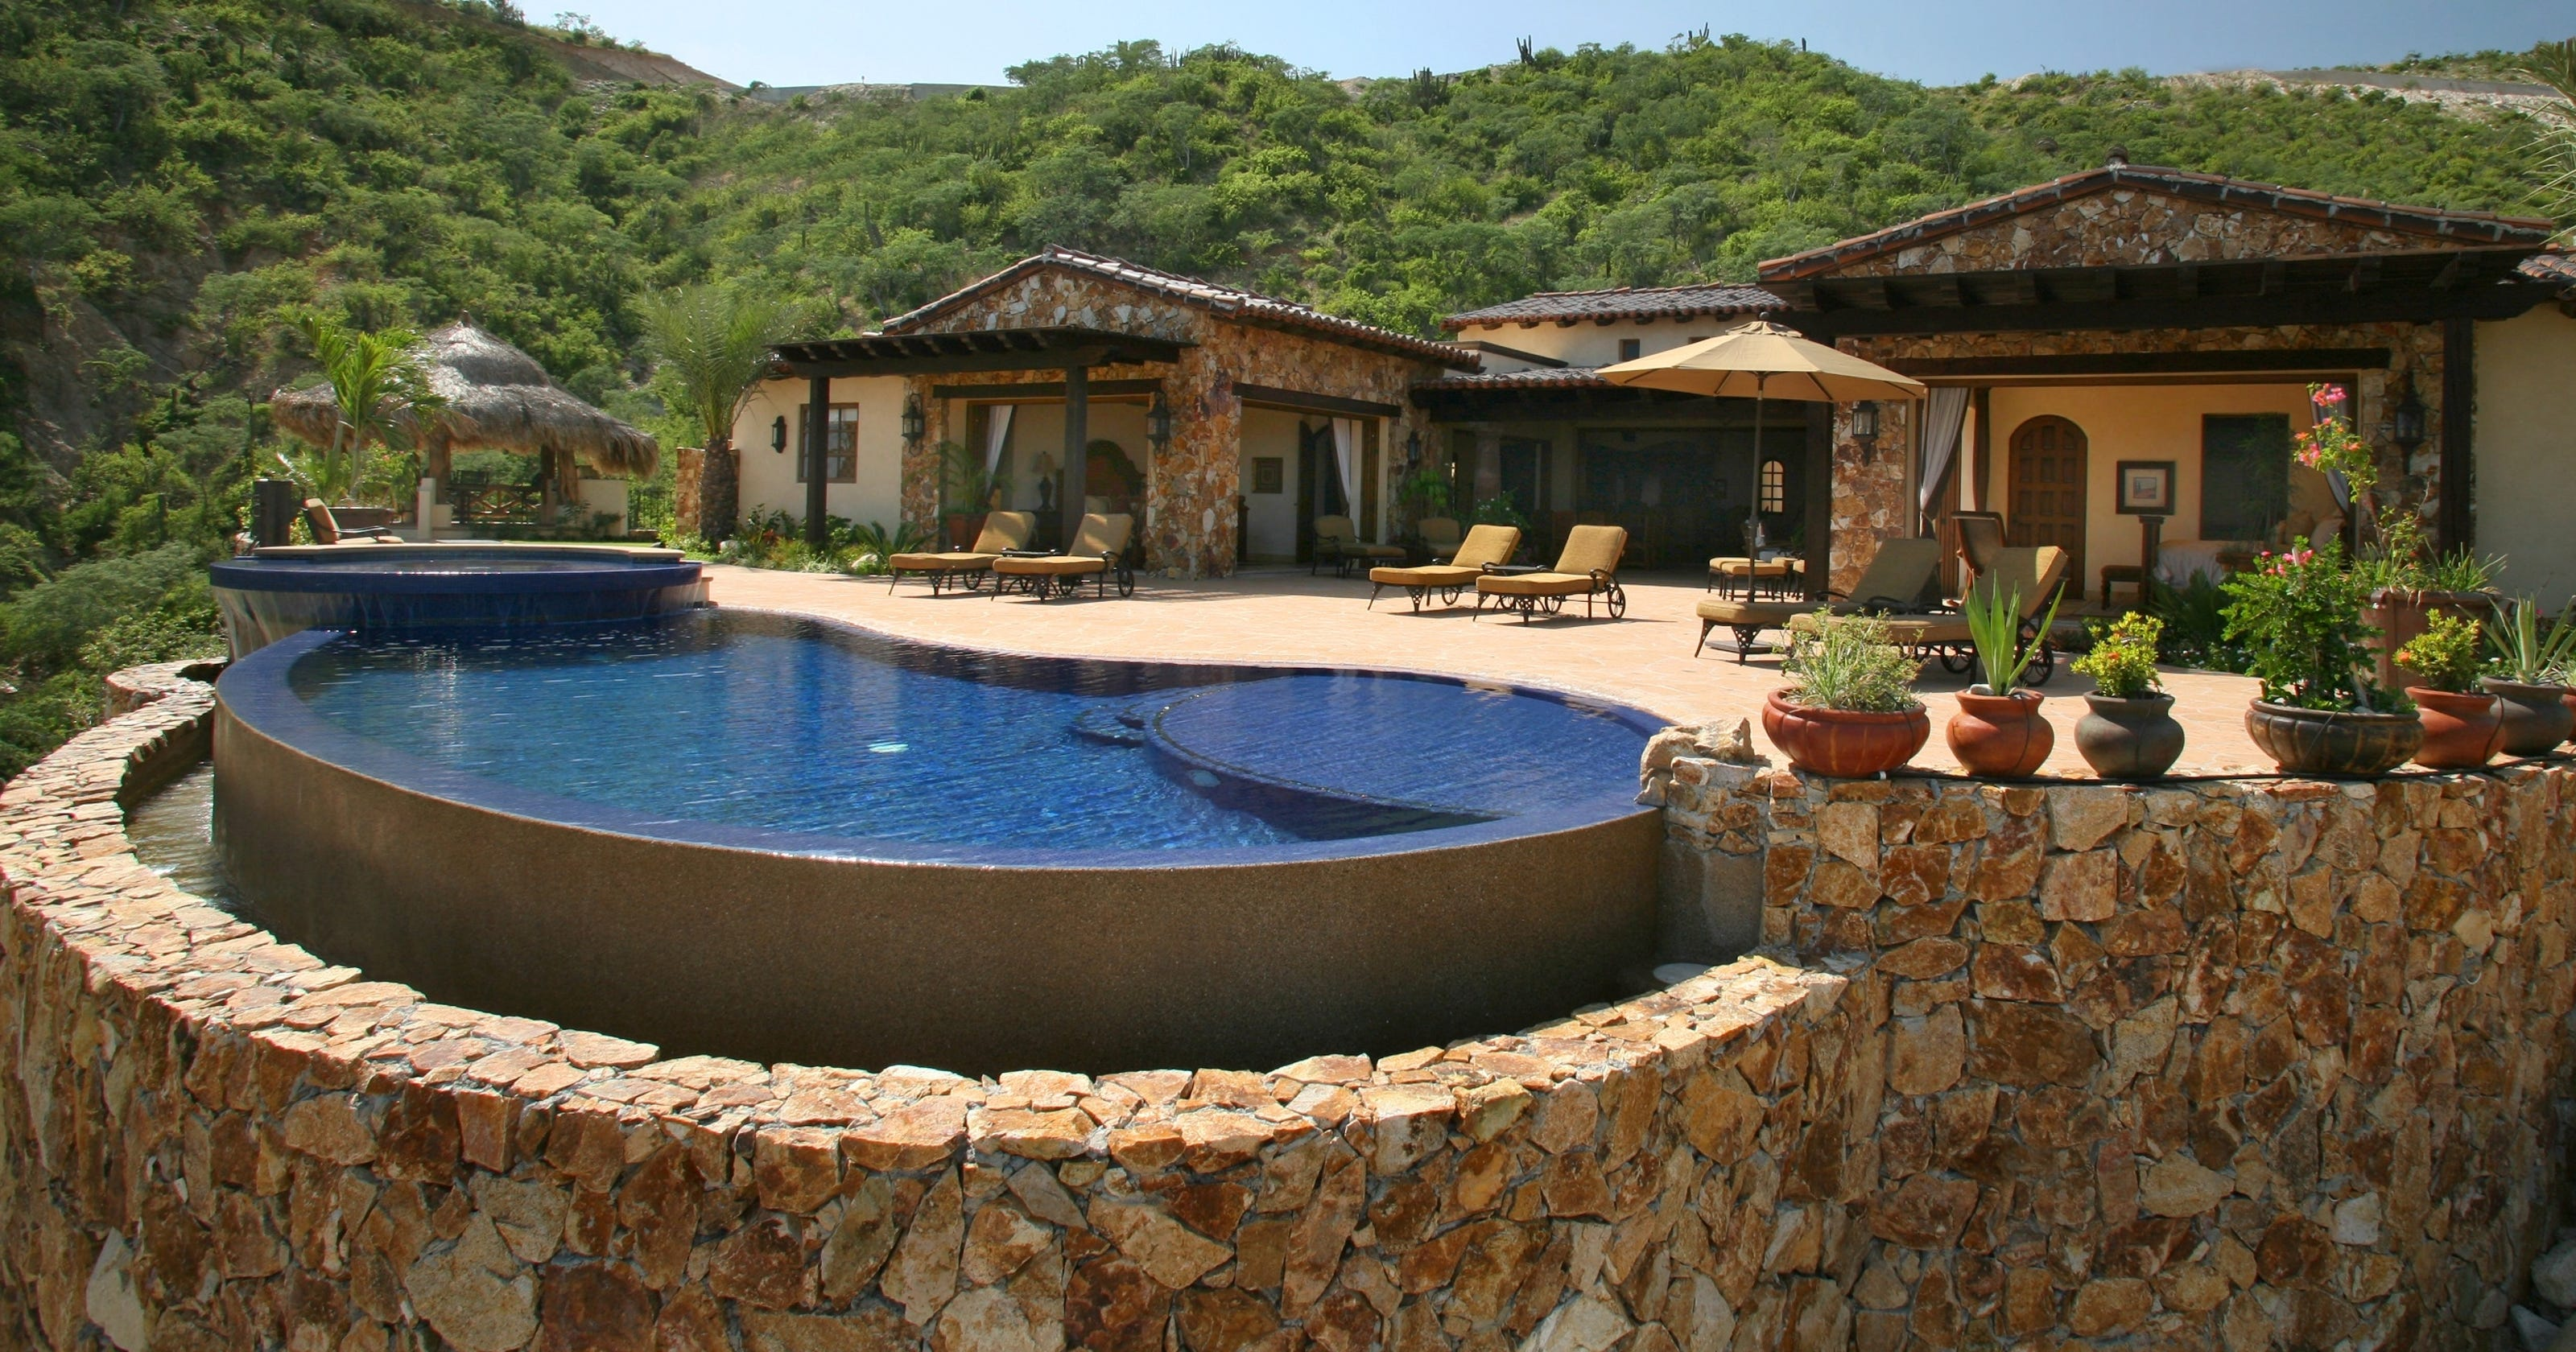 Eight popular amenities for high-end homes